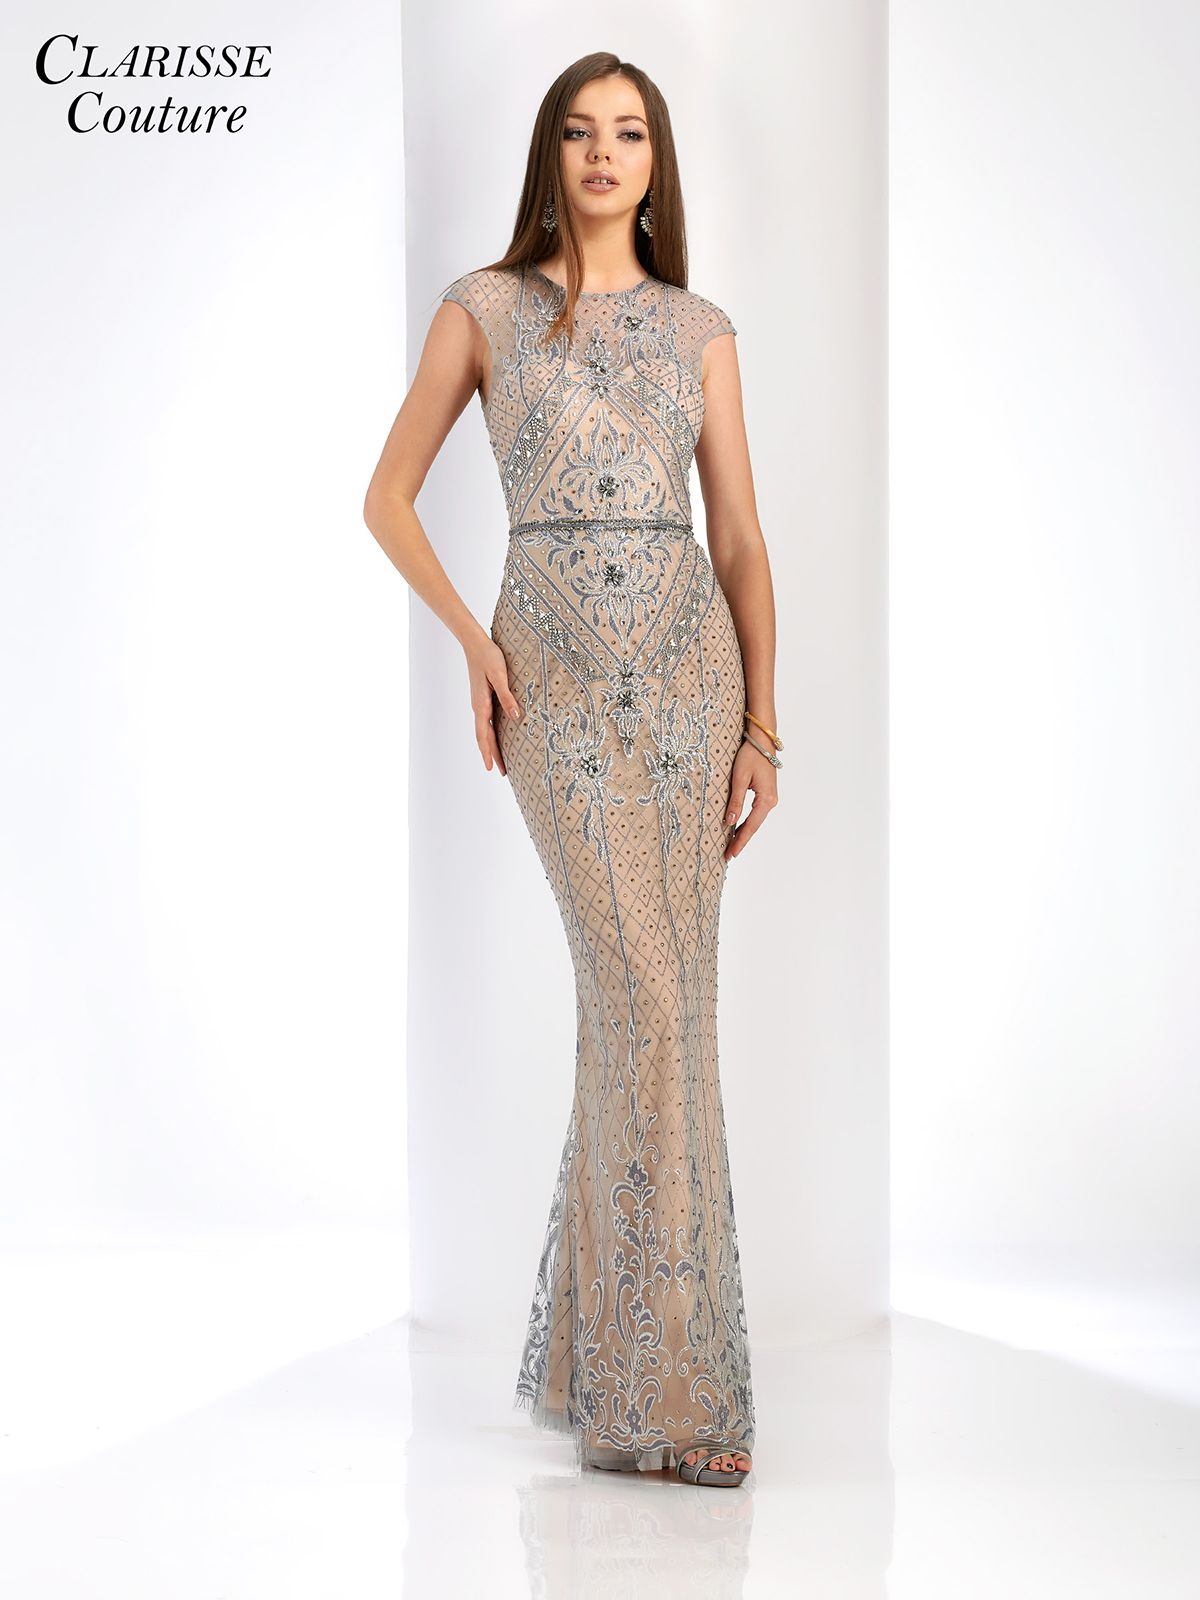 Gray and Nude Evening Gown 4916 | Black tie events, Gowns and Black tie